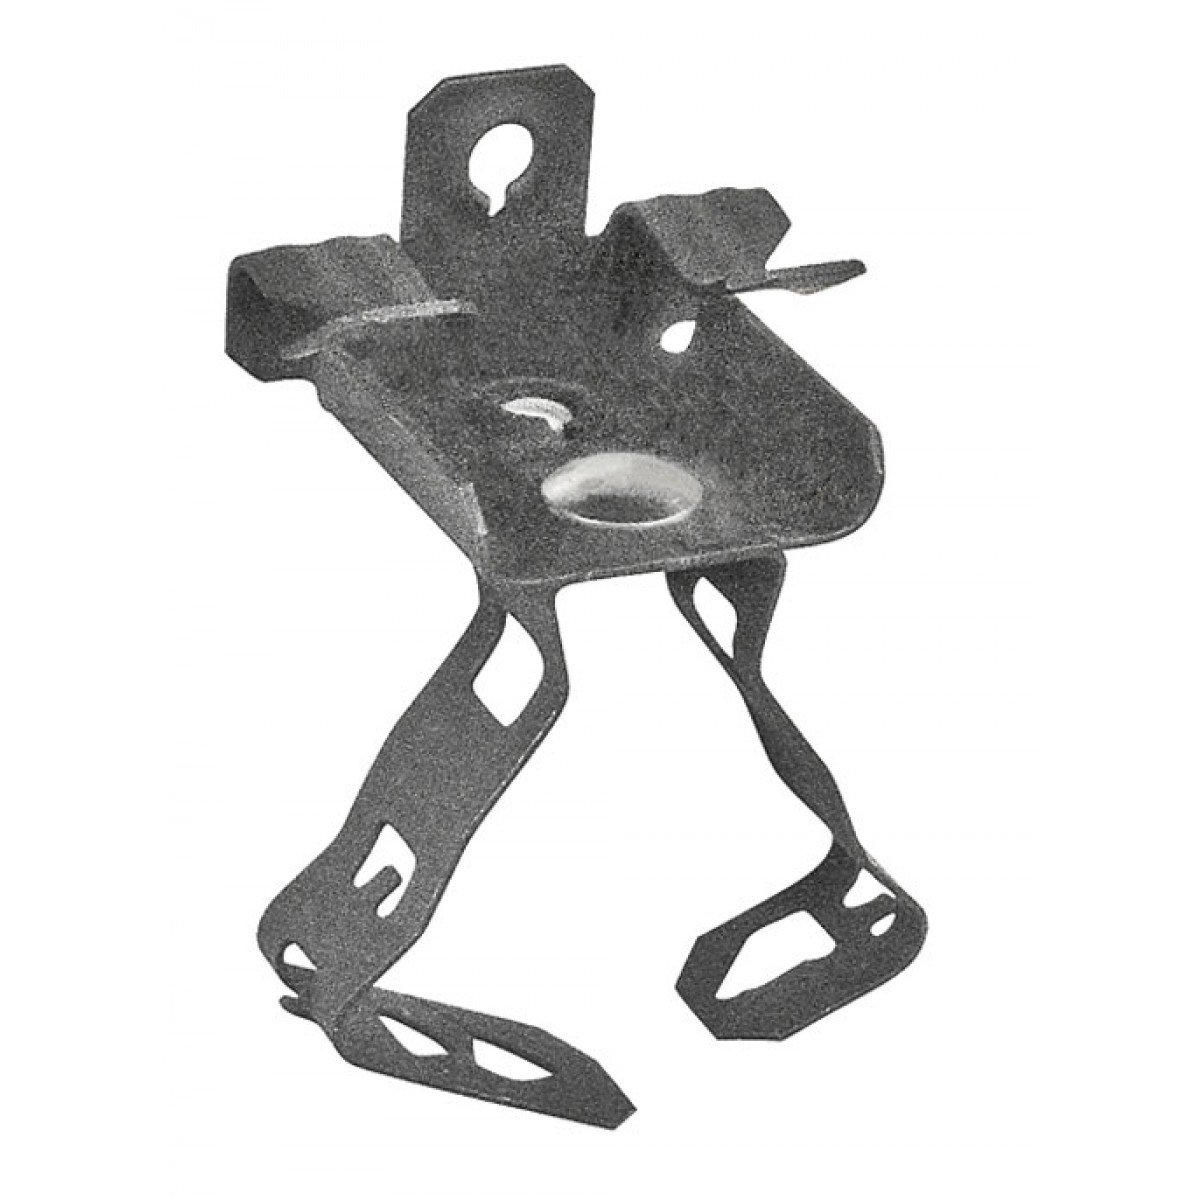 5 Pcs, 2 In. Conduit Hanger w/5/16 to 1/2 Thick Flange Mount, Spring Steel Used to Suspend 2 Conduits From Bottom of Beams